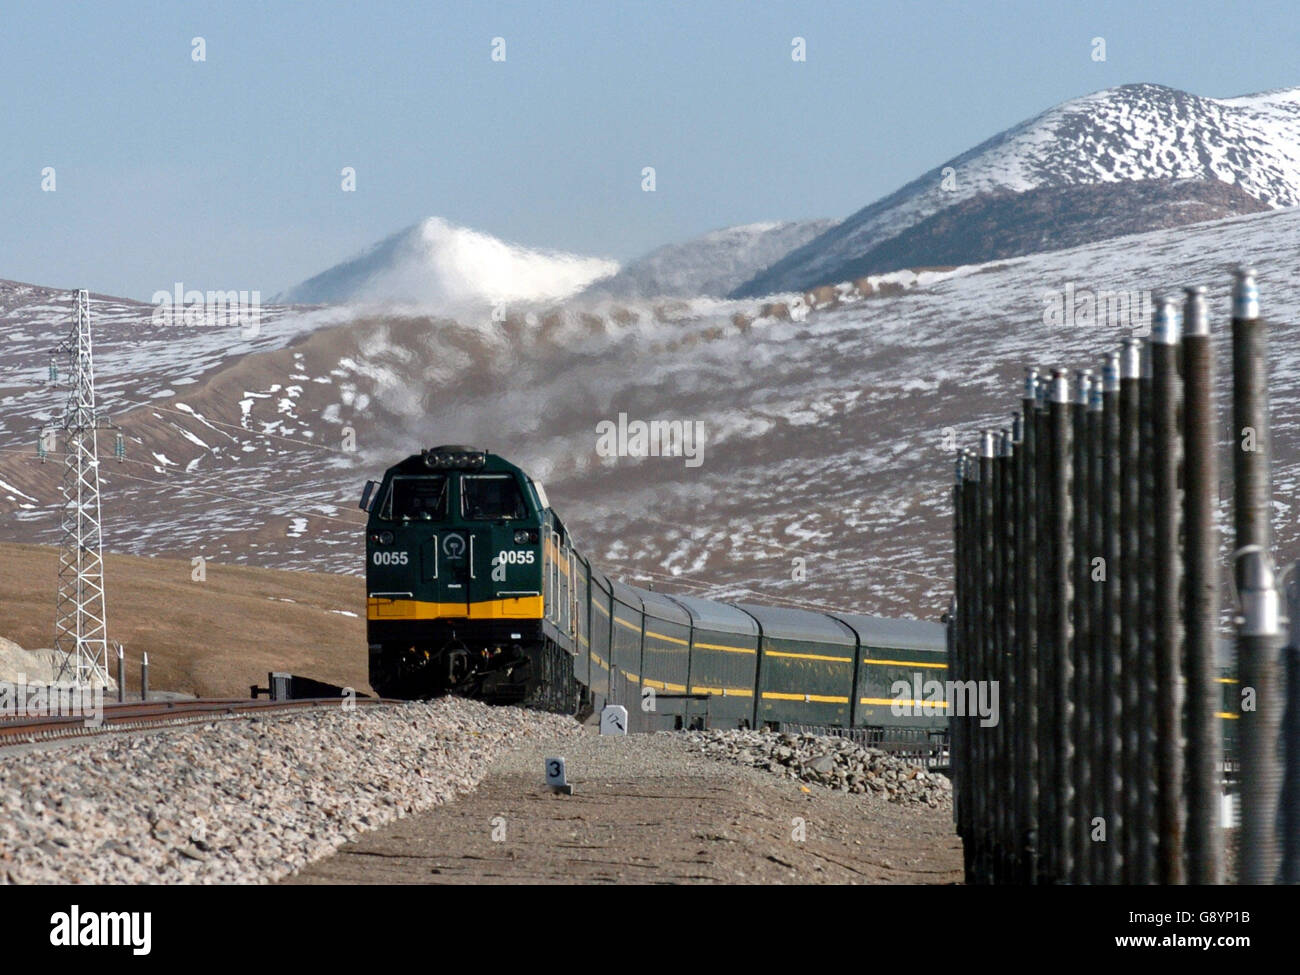 (160630) -- LHASA, June 30, 2016 (Xinhua) -- File photo taken on June 13, 2007 shows a train passing the experimental - Stock Image